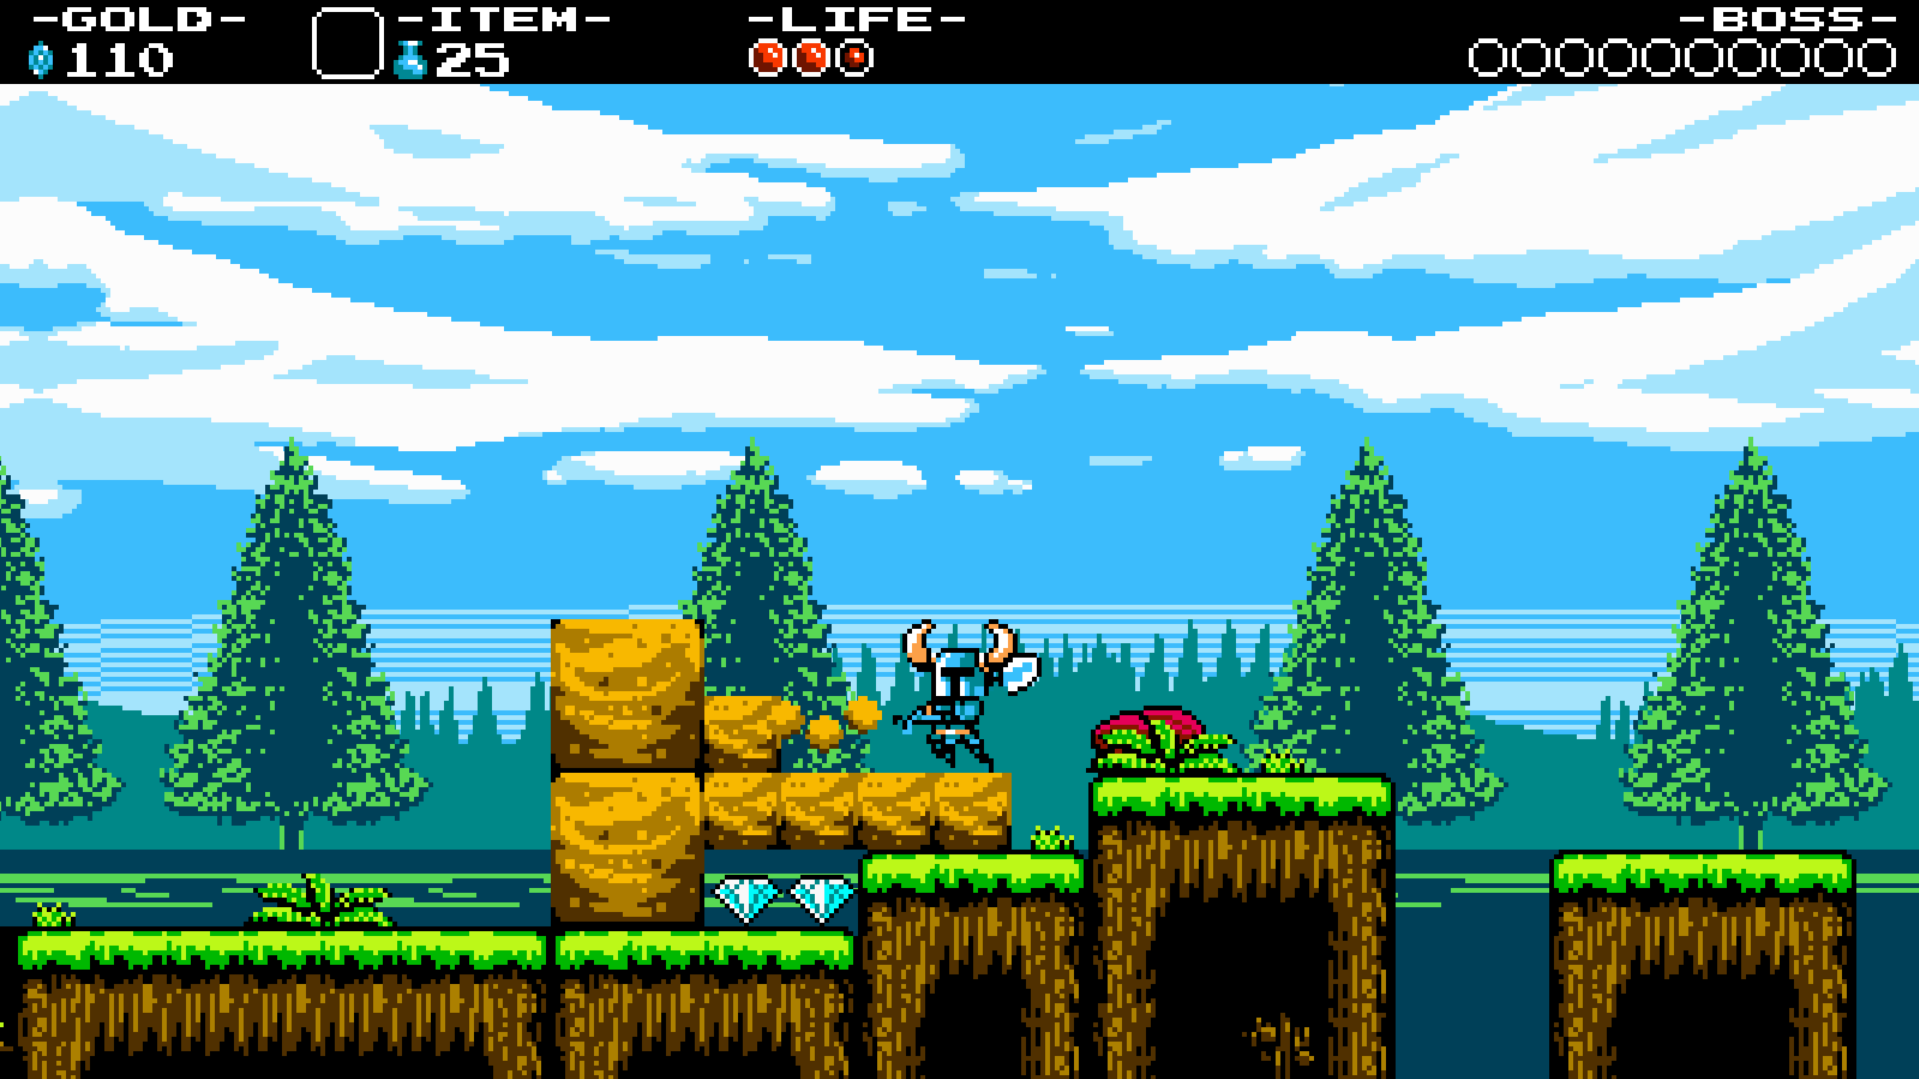 Game boy color palette gimp - Shovel Knight Must Rescue His Friend Shield Knight In A Timeless Tale Of Shovelry